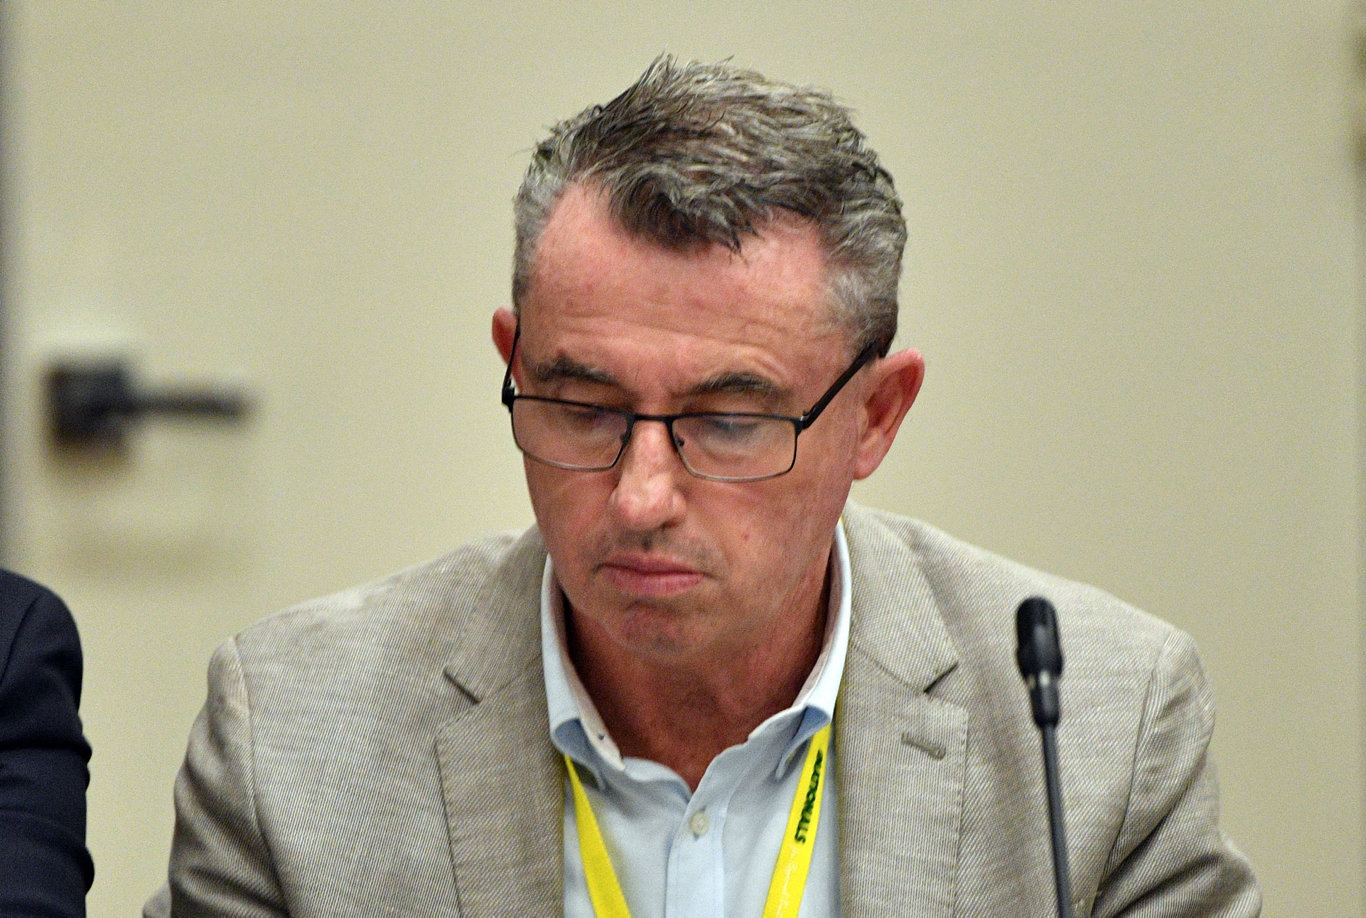 Nationals Member for Page Kevin Hogan at the Nationals Federal Council at the Canberra Hyatt Hotel in Canberra, Saturday, August 18, 2018. (AAP Image/Mick Tsikas) NO ARCHIVING